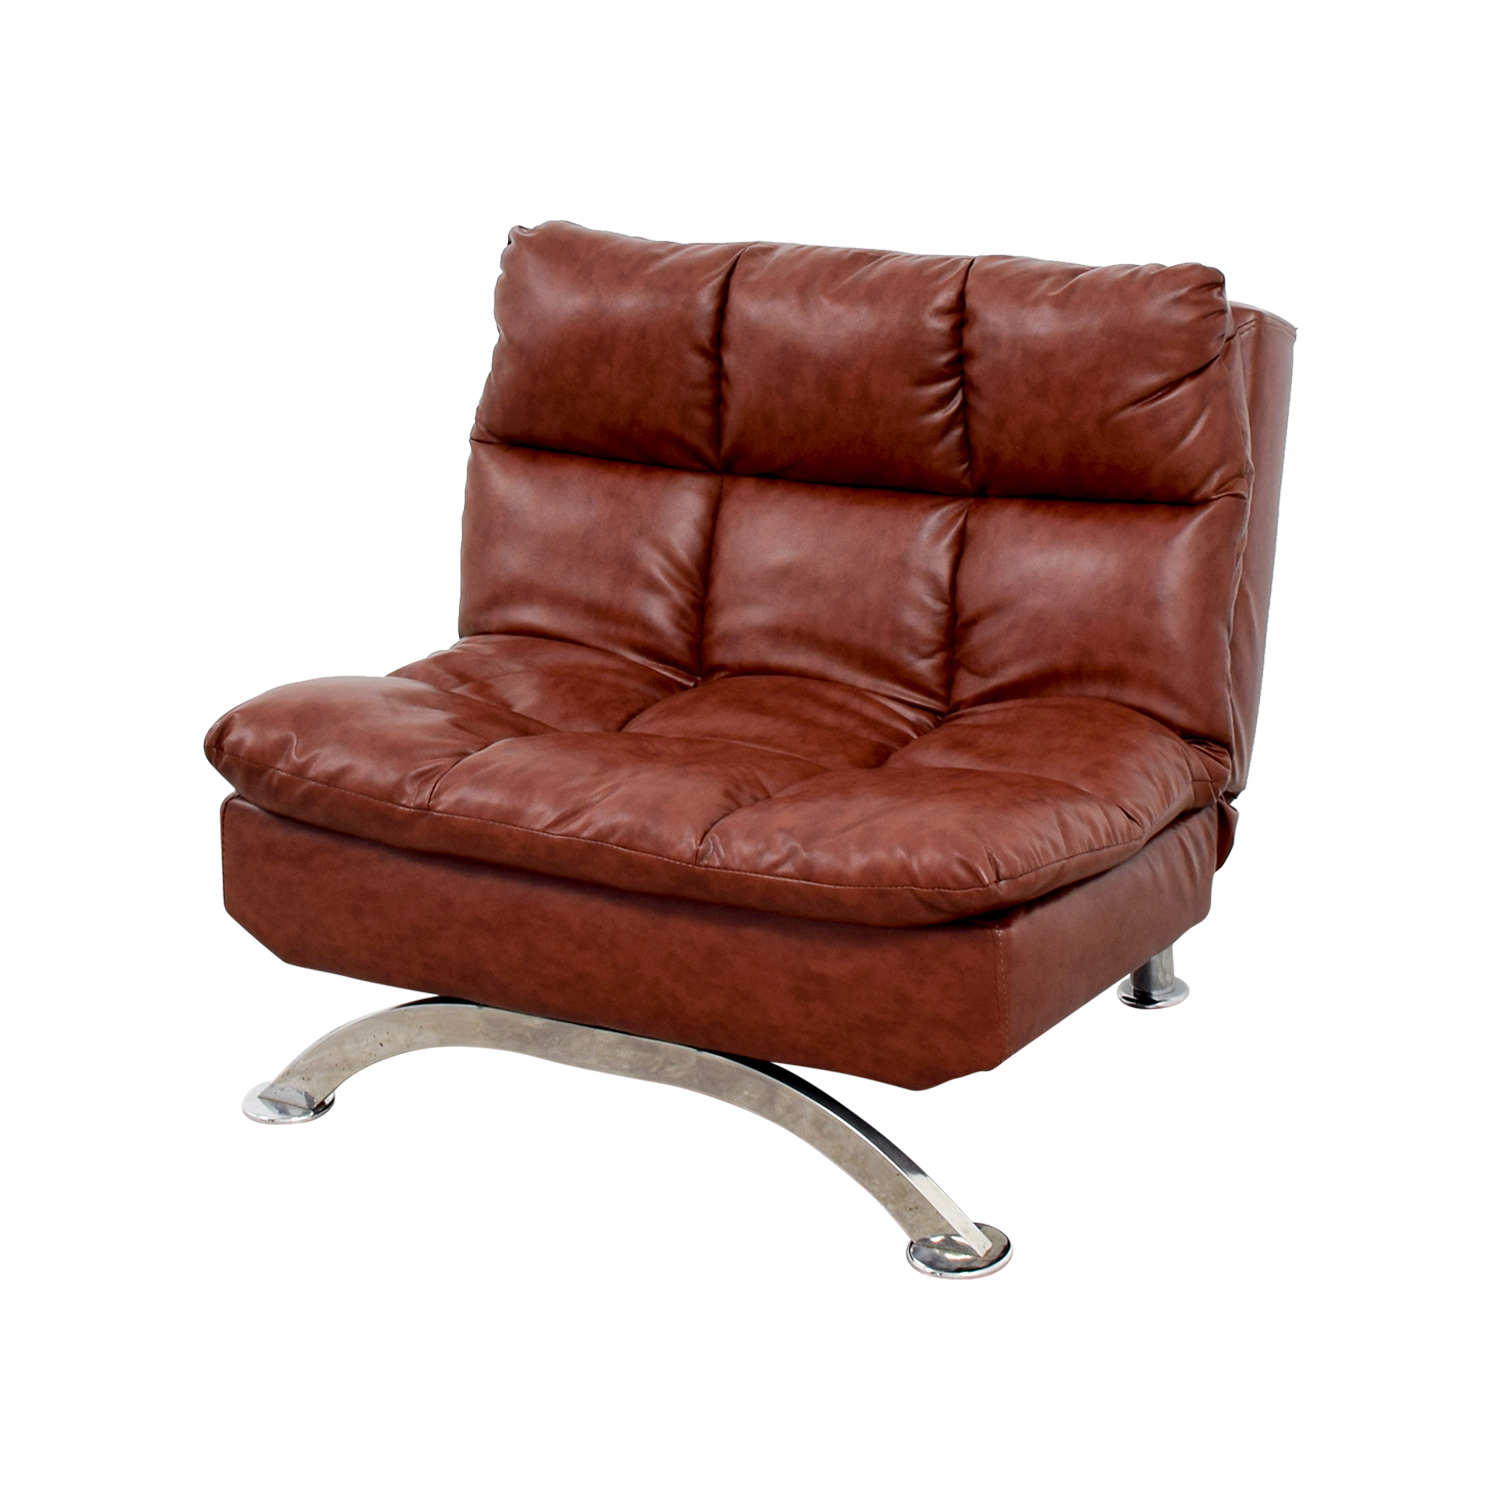 Wayfair Love Brown Leather Tufted Reclining Chair